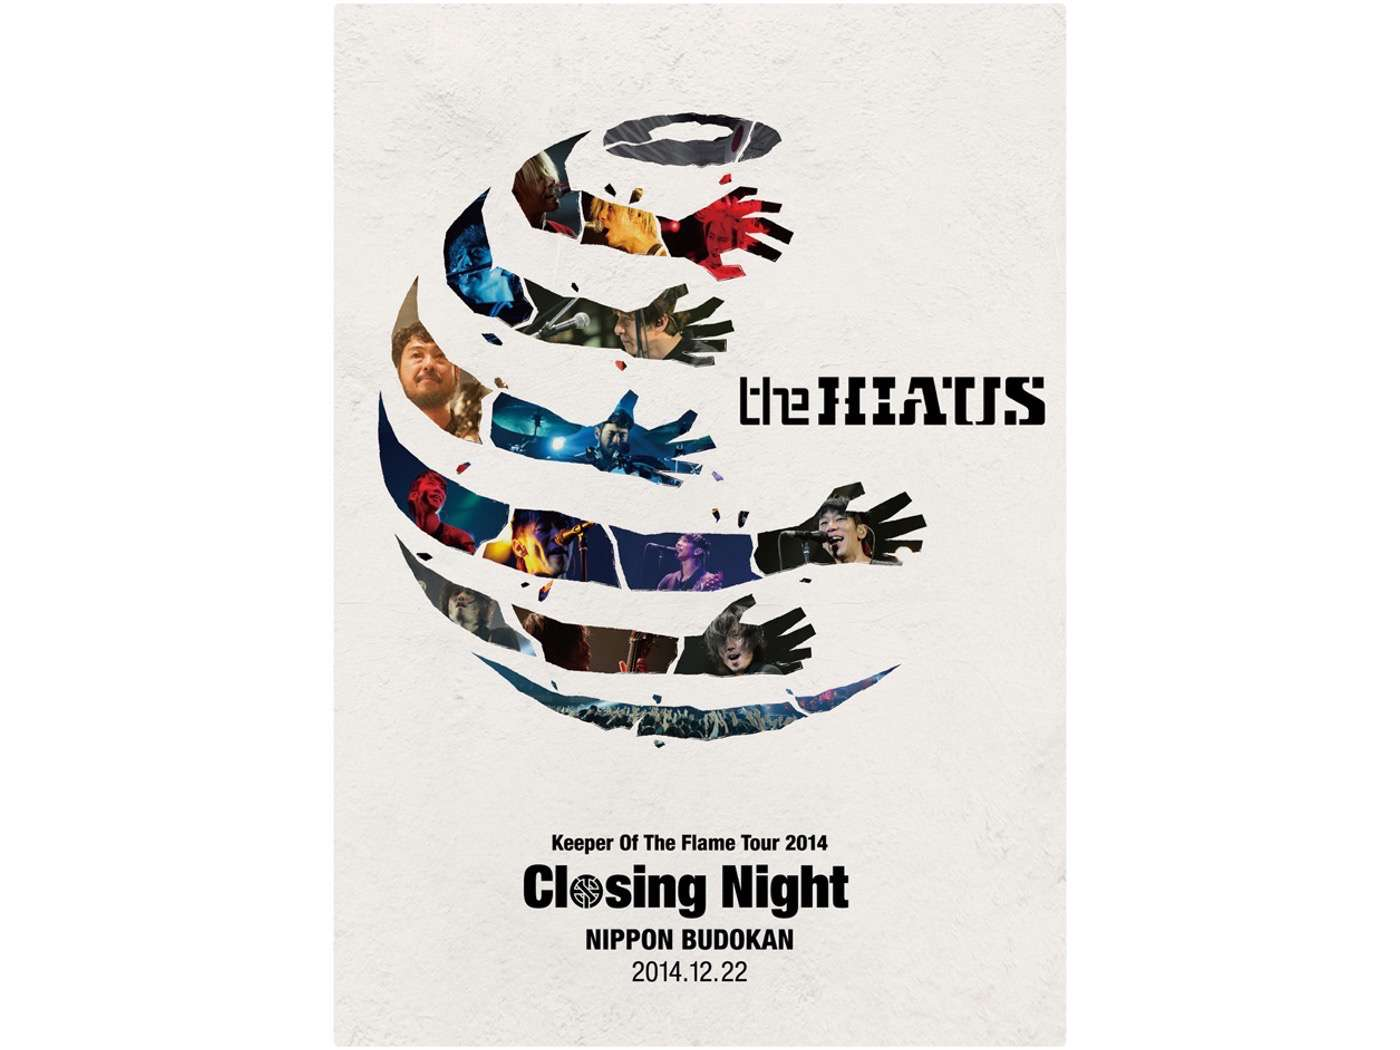 HIATUS Closing Night